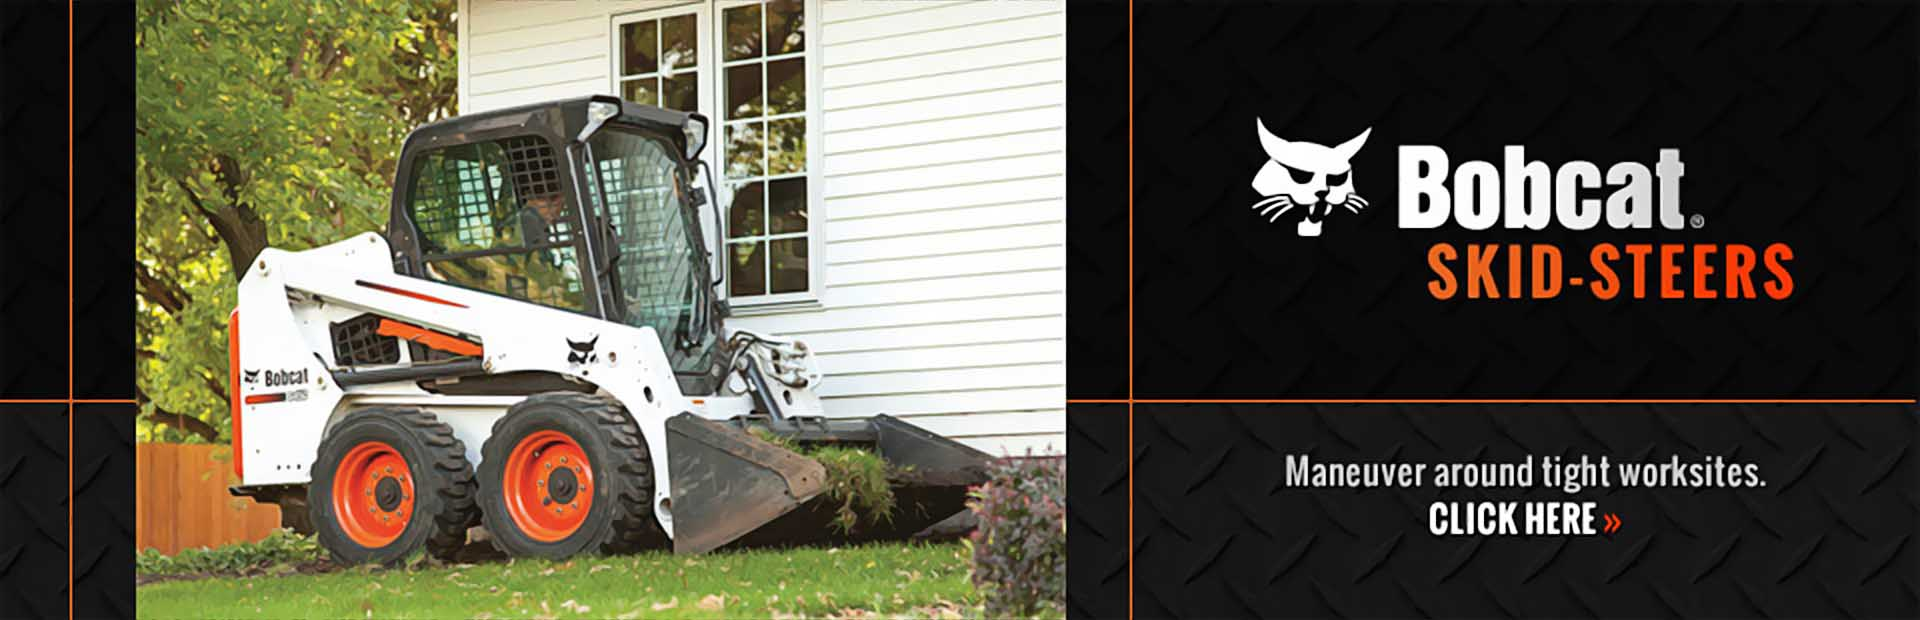 Bobcat Skid-Steers: Click here to view our selection.